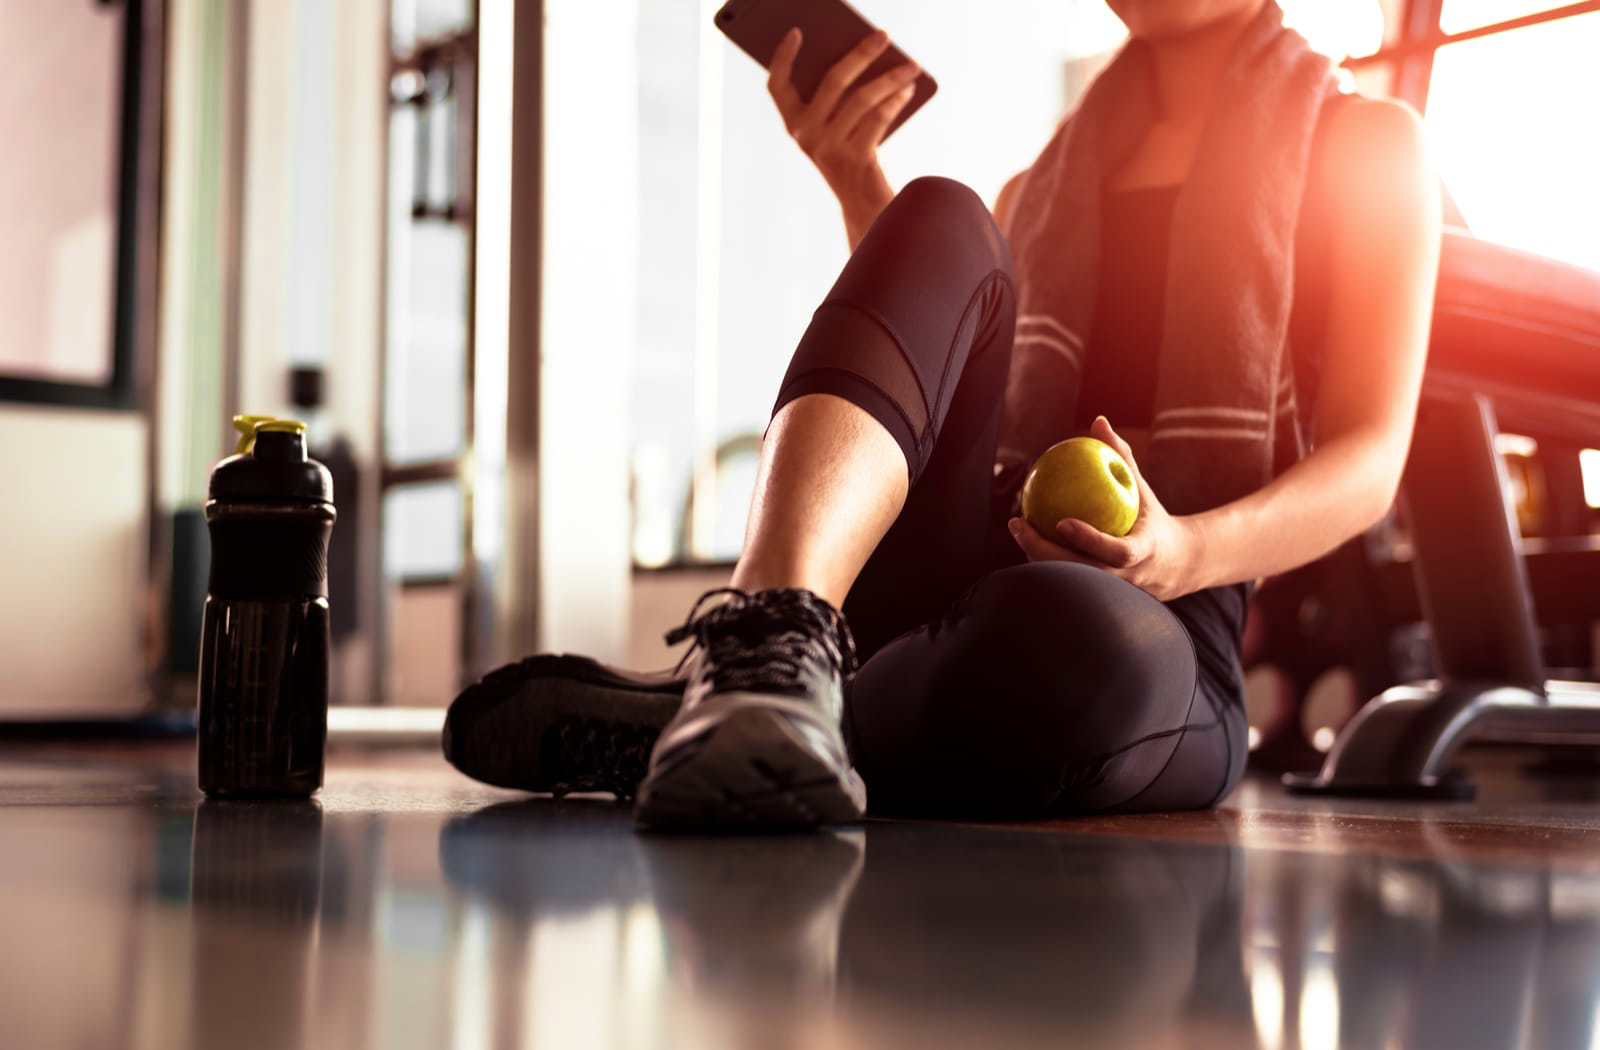 A woman checking her phone and eating an apple after working out